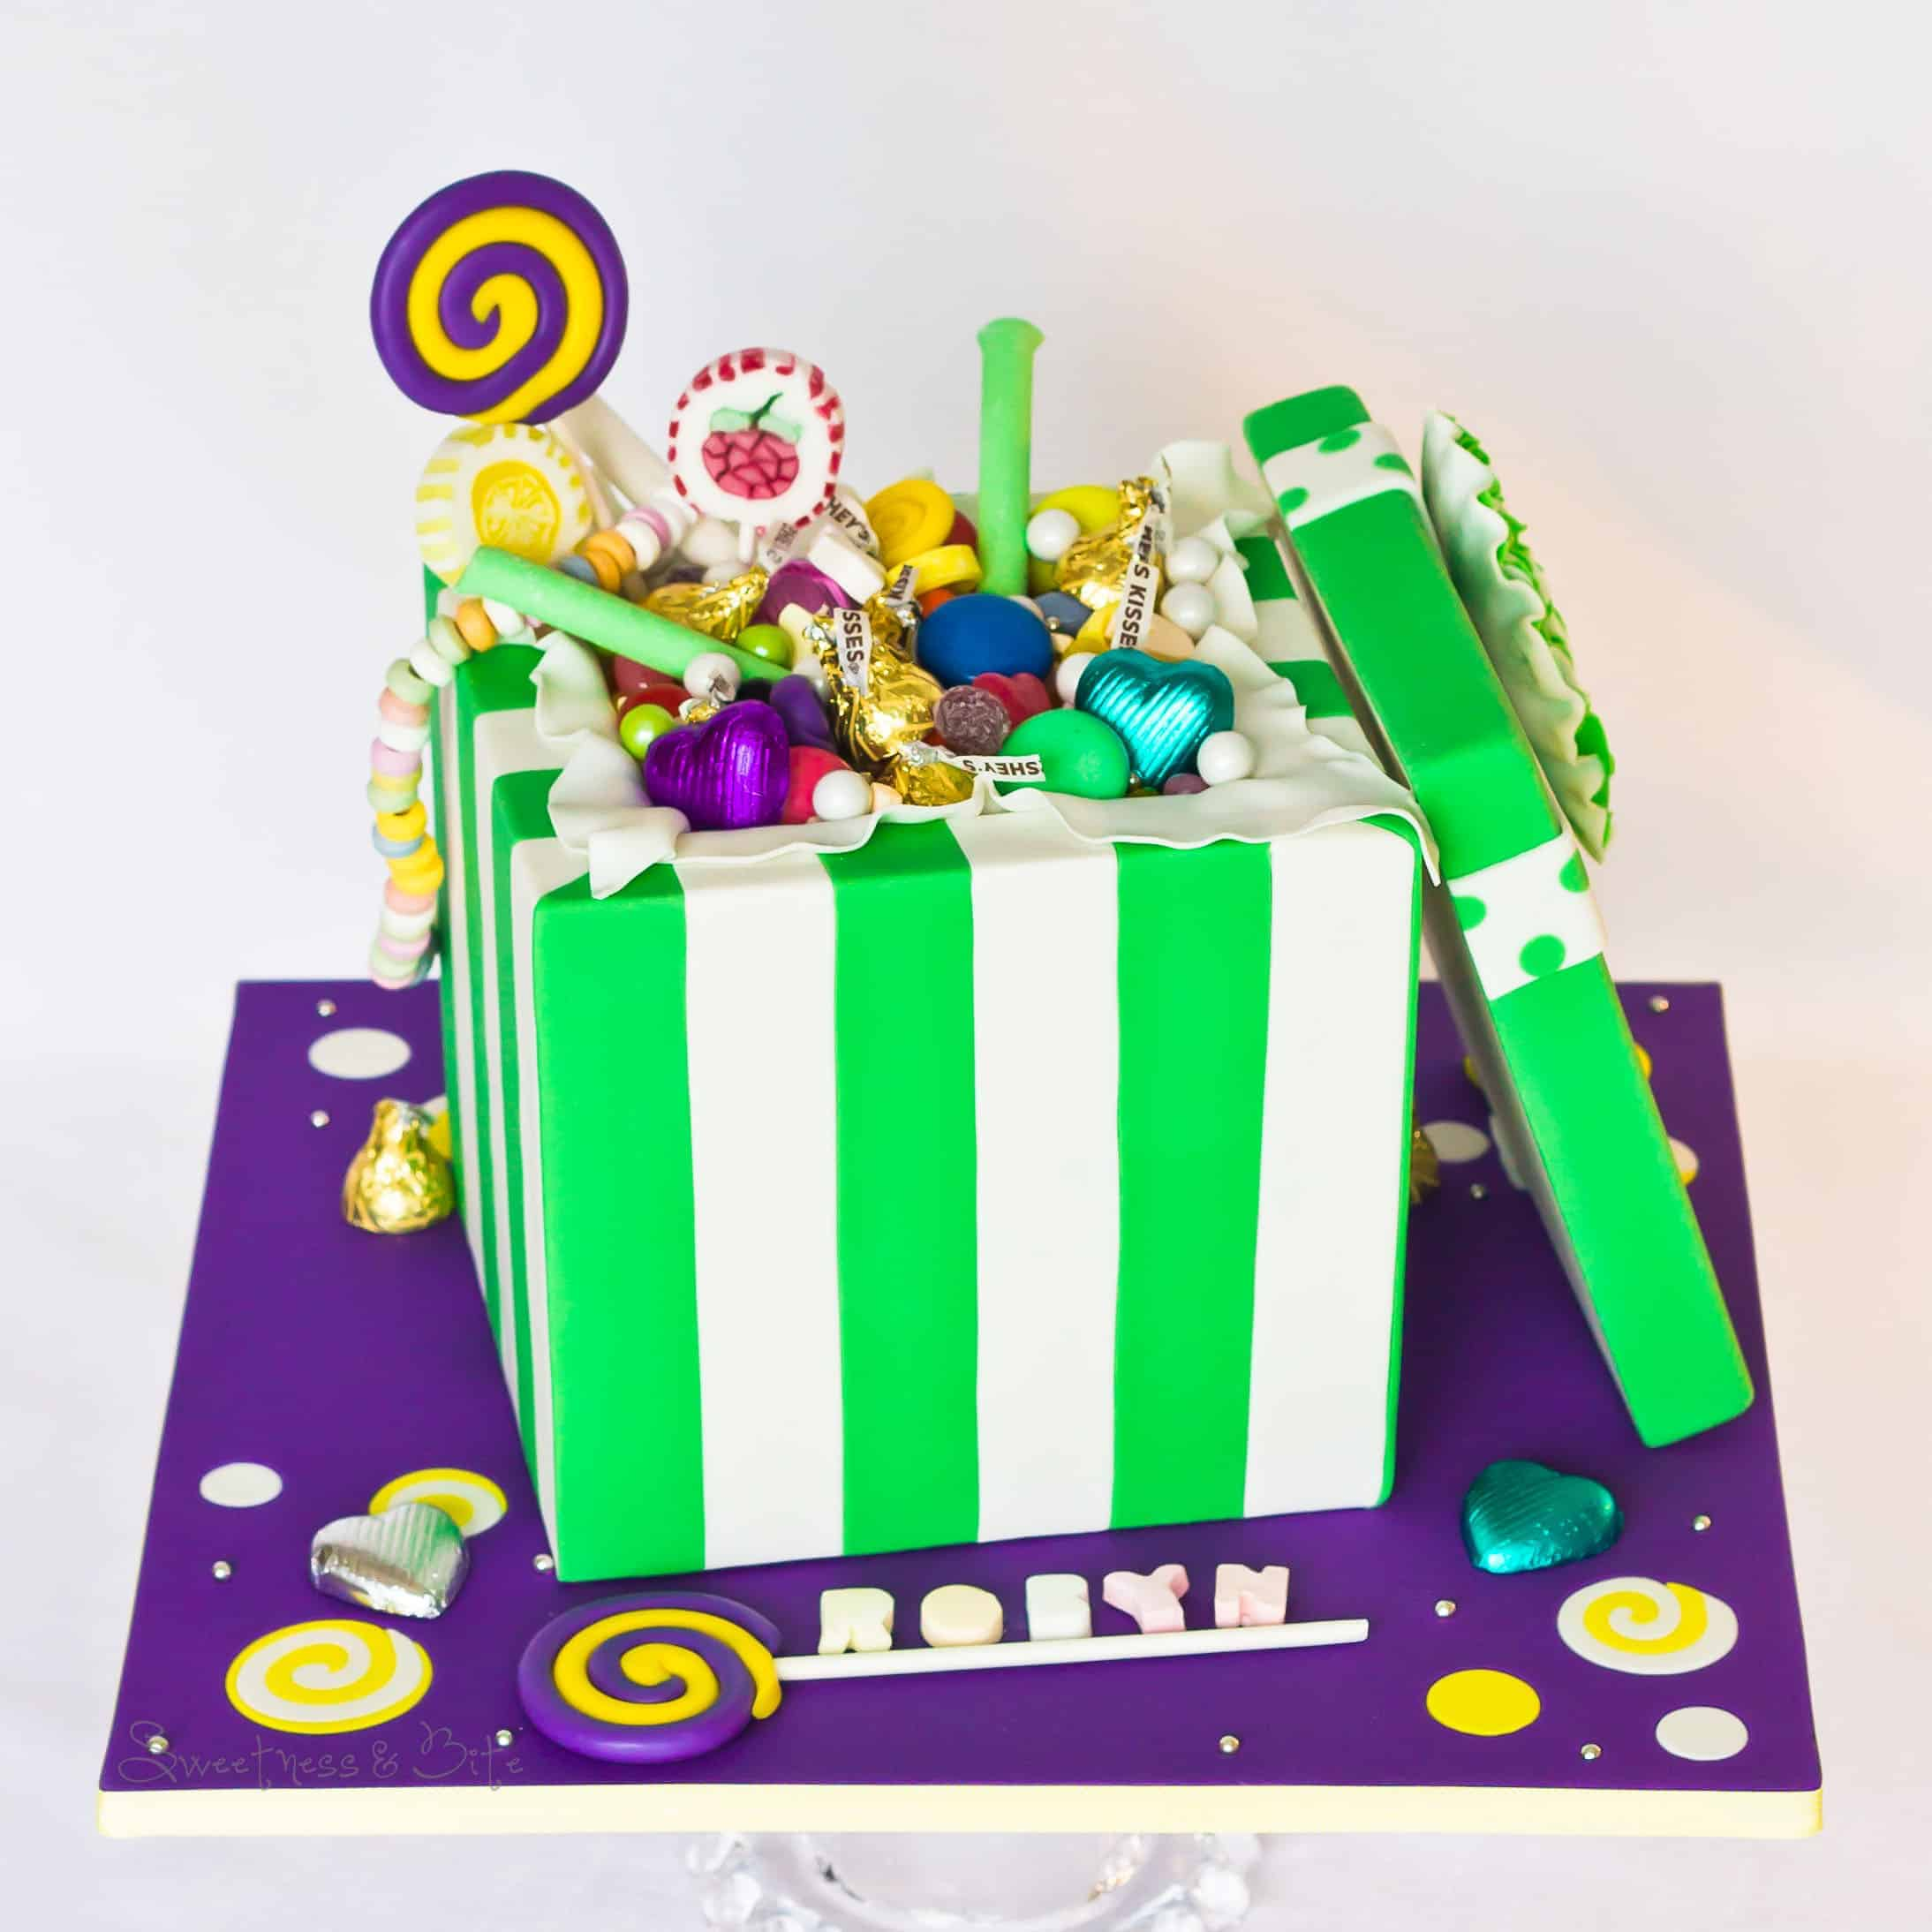 Cake filled with Jelly beans, chocolate hearts, Hershey's kisses, jelly hearts, fizzy letters, fruit tingles, tiny jubes, giant smarties, green and white sixlets, candy necklace, spearmint pencils, lolly pops, and handmade modelling chocolate 'lolly pops""